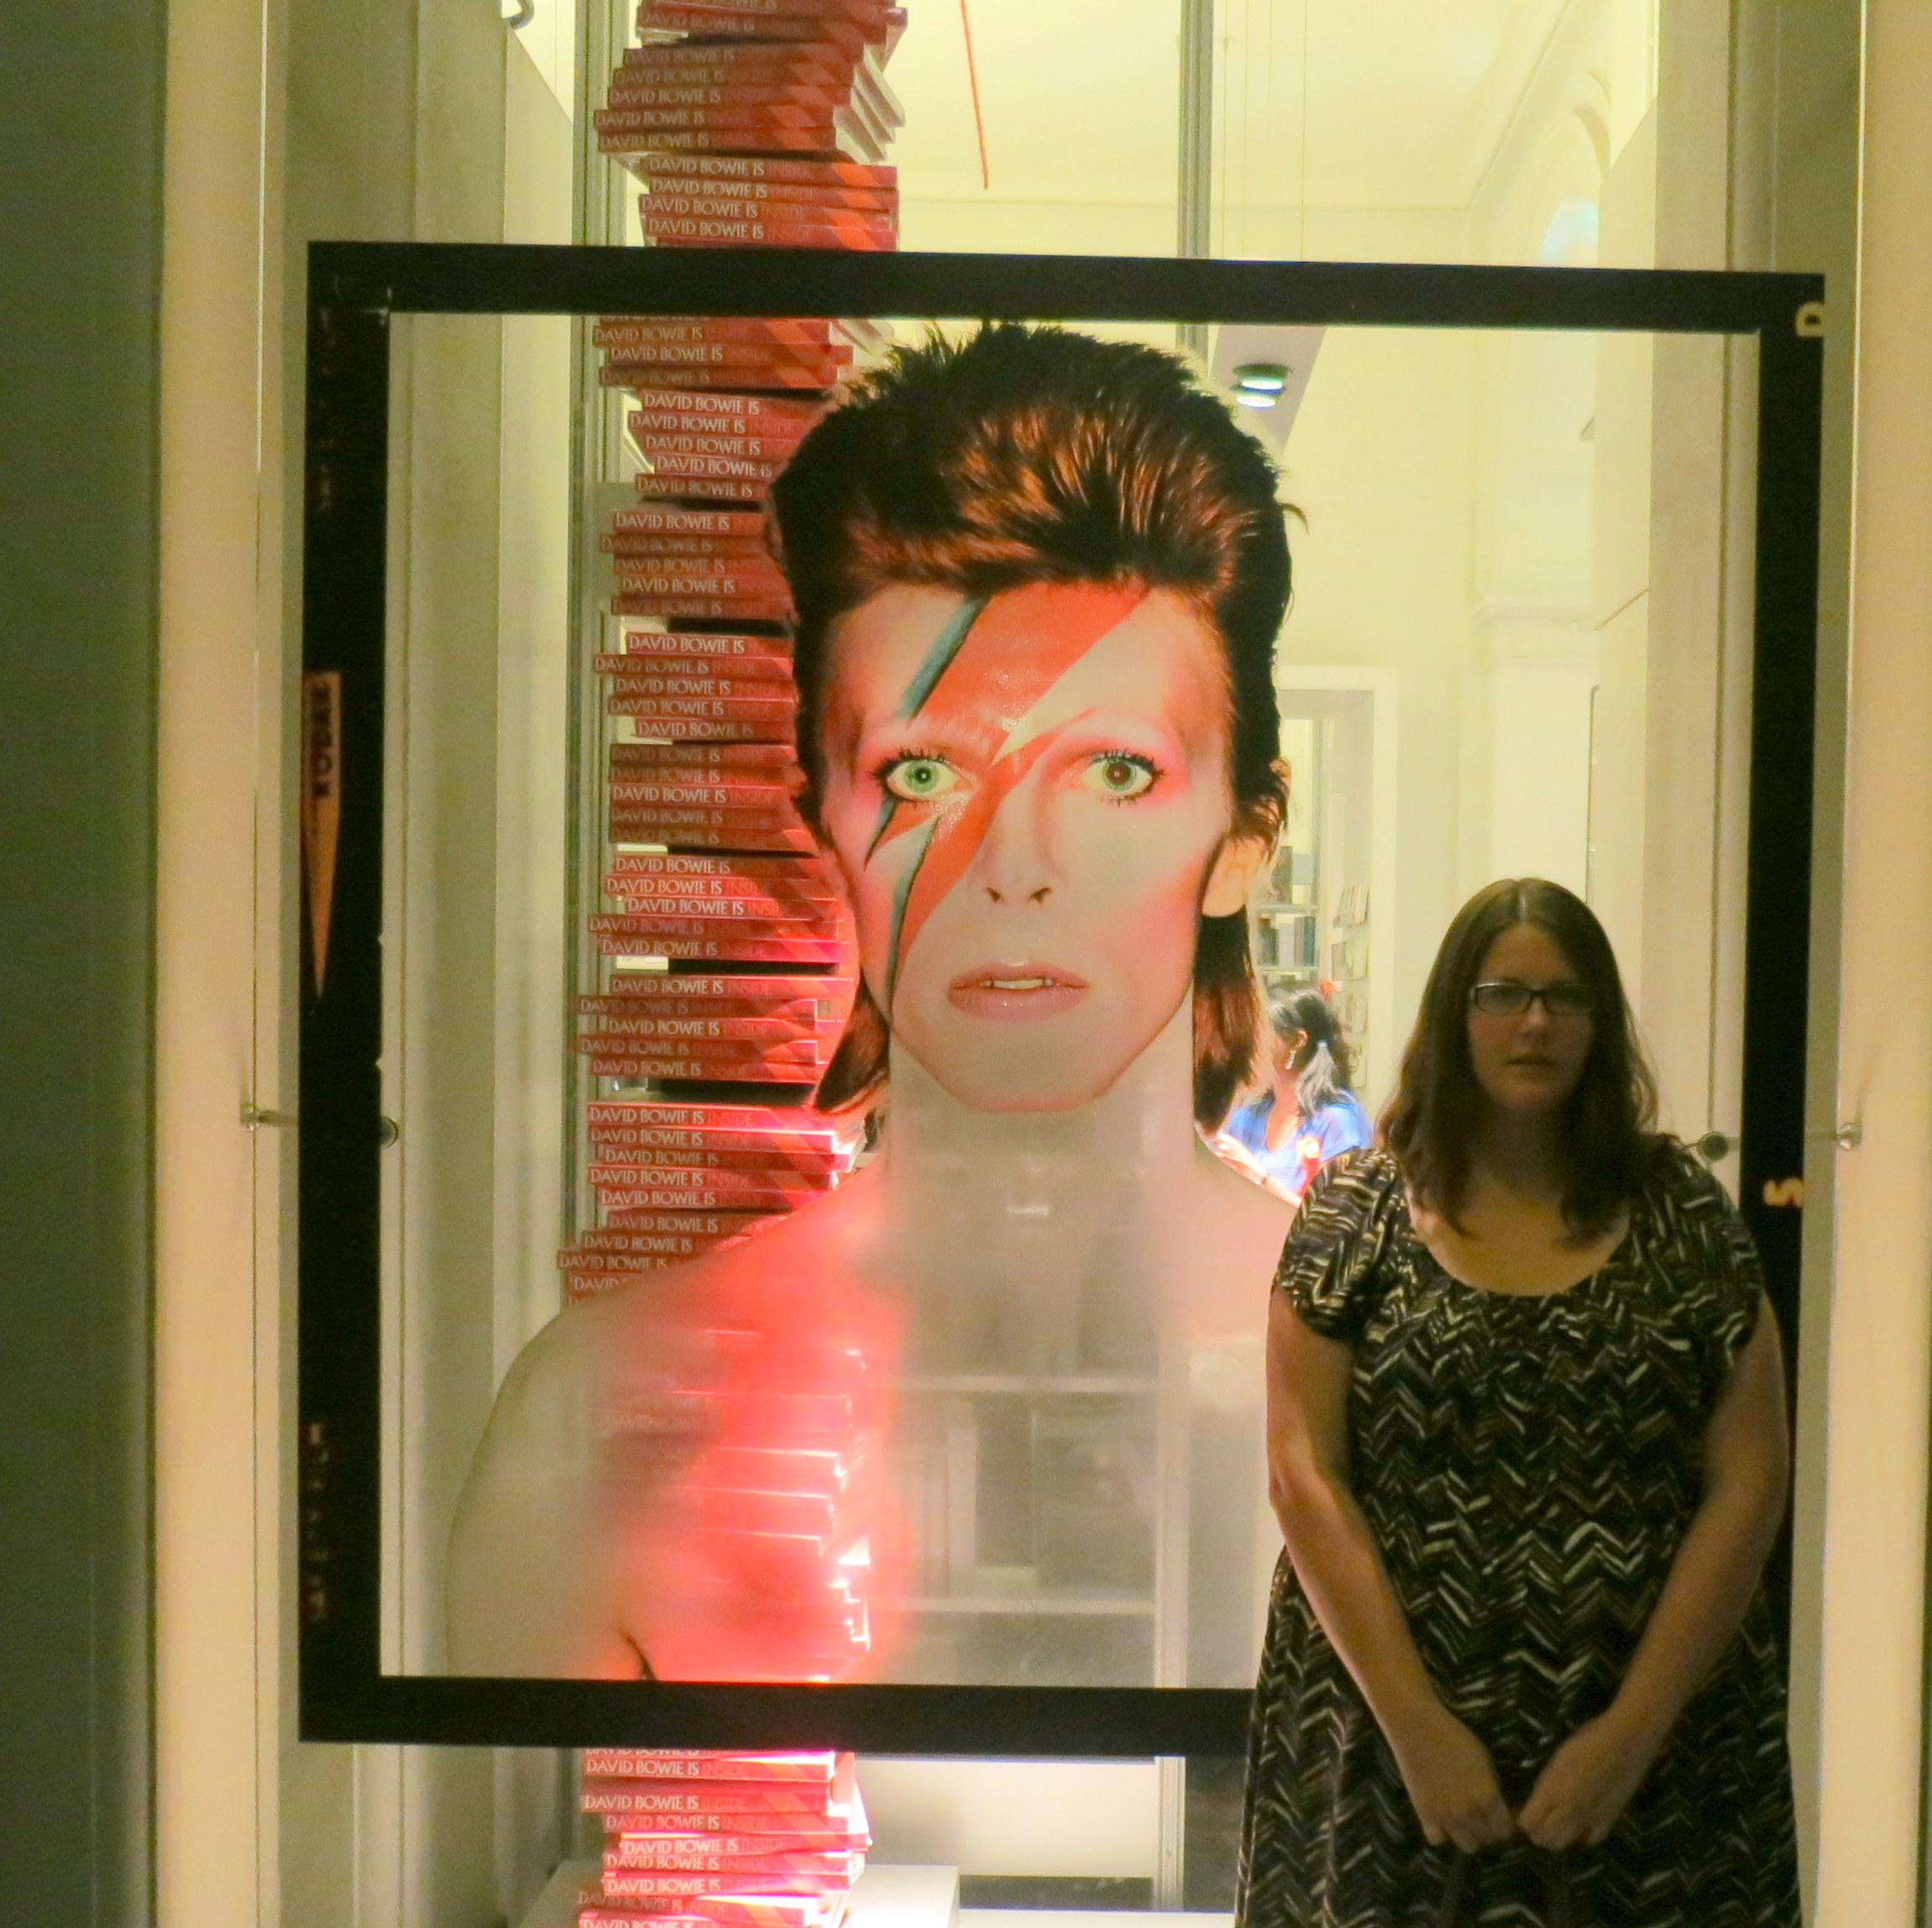 At the David Bowie Is... exhibit